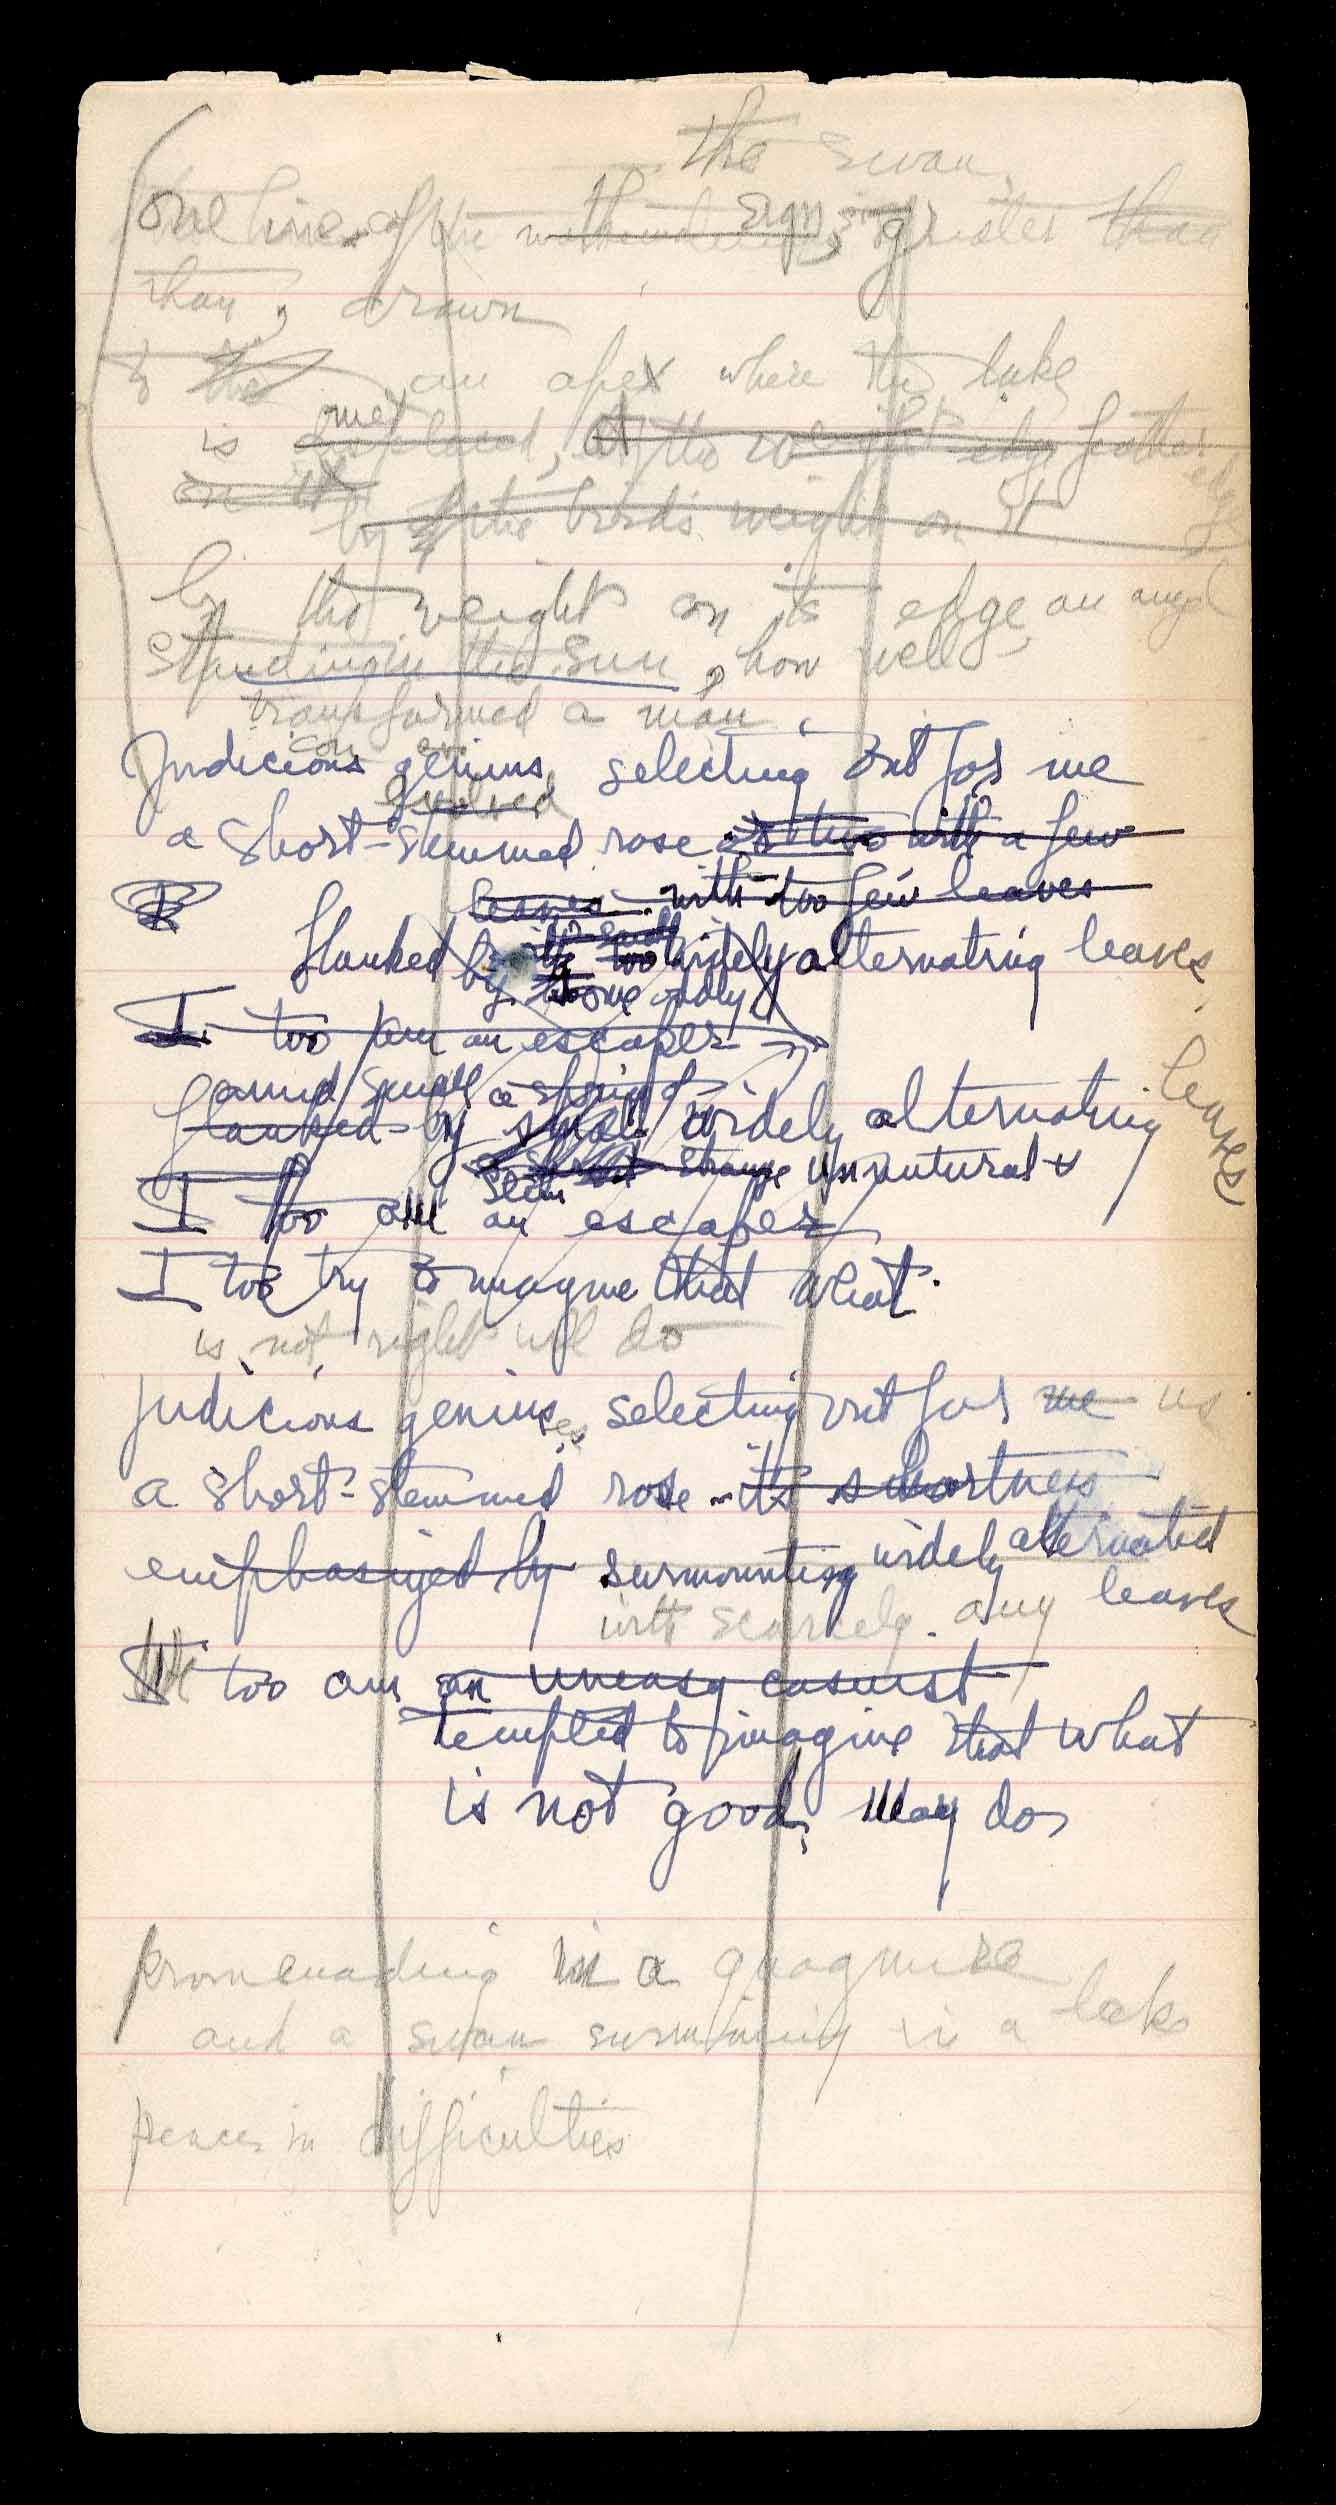 7.04.07, image 5; Poetry Notebook from the 1930s.